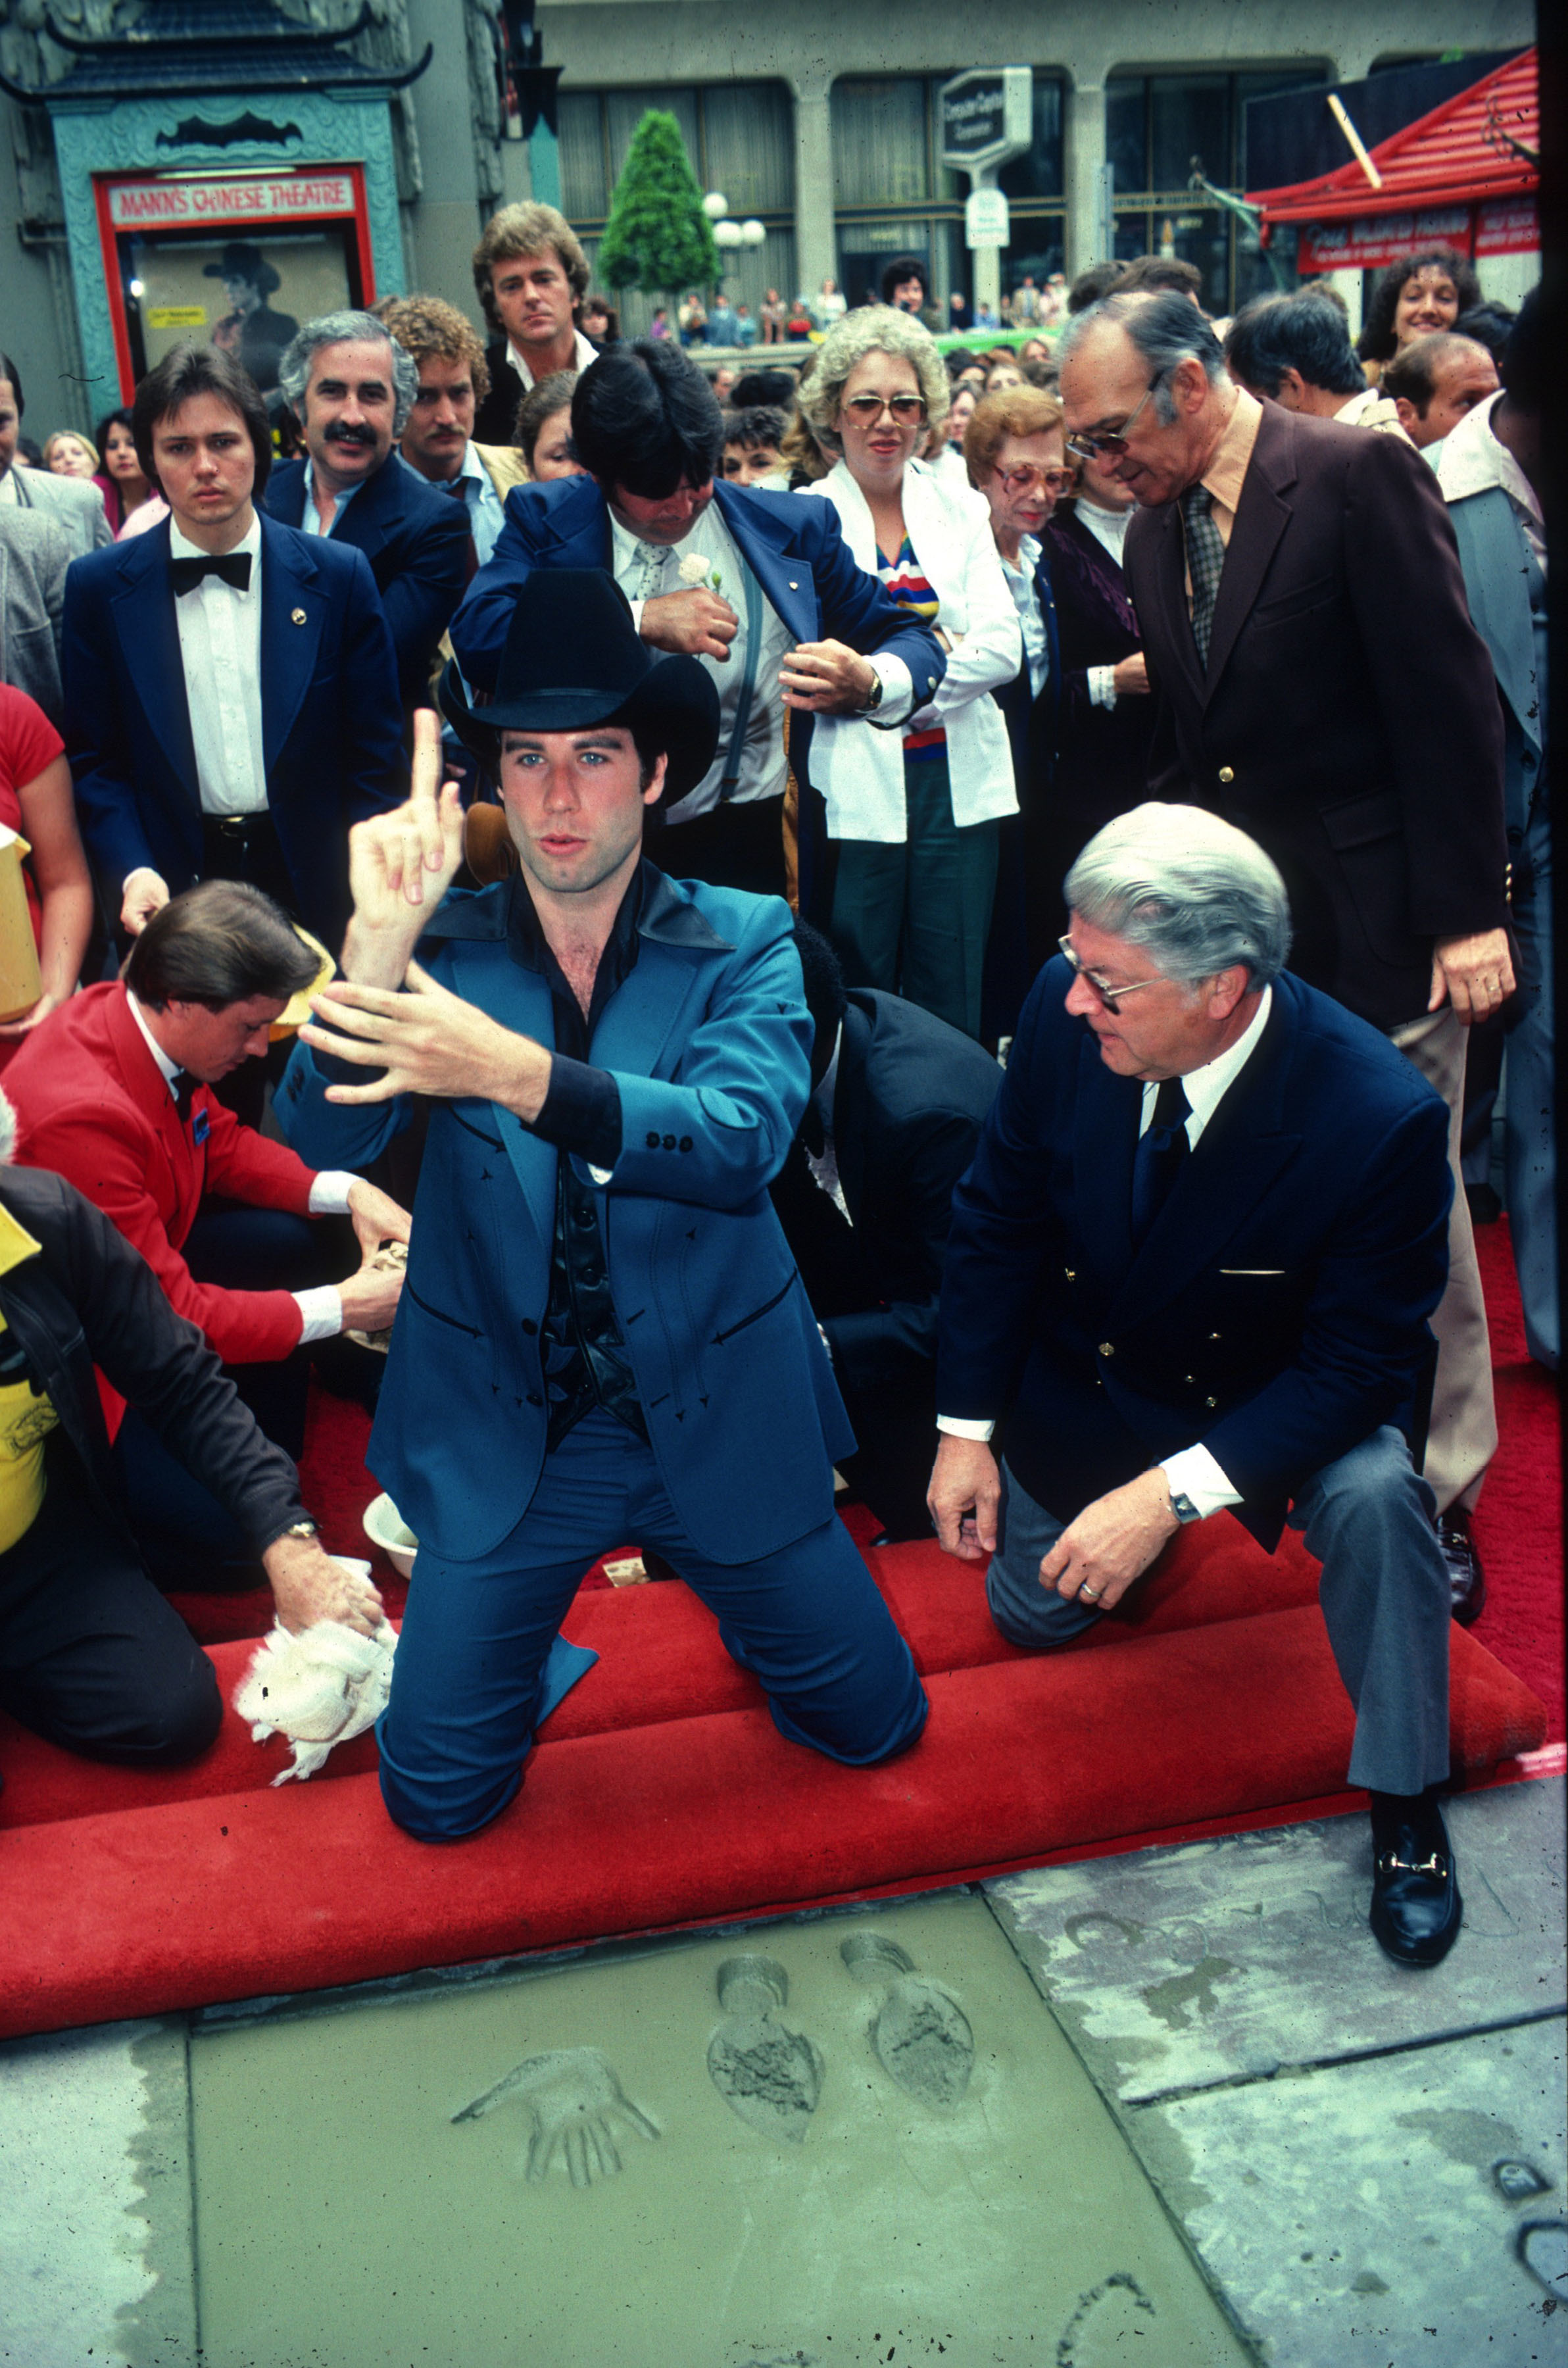 John Travolta left his footprints and handprints in concrete outside Manns Chinese Theatre in Hollywood on June 2, 1980.